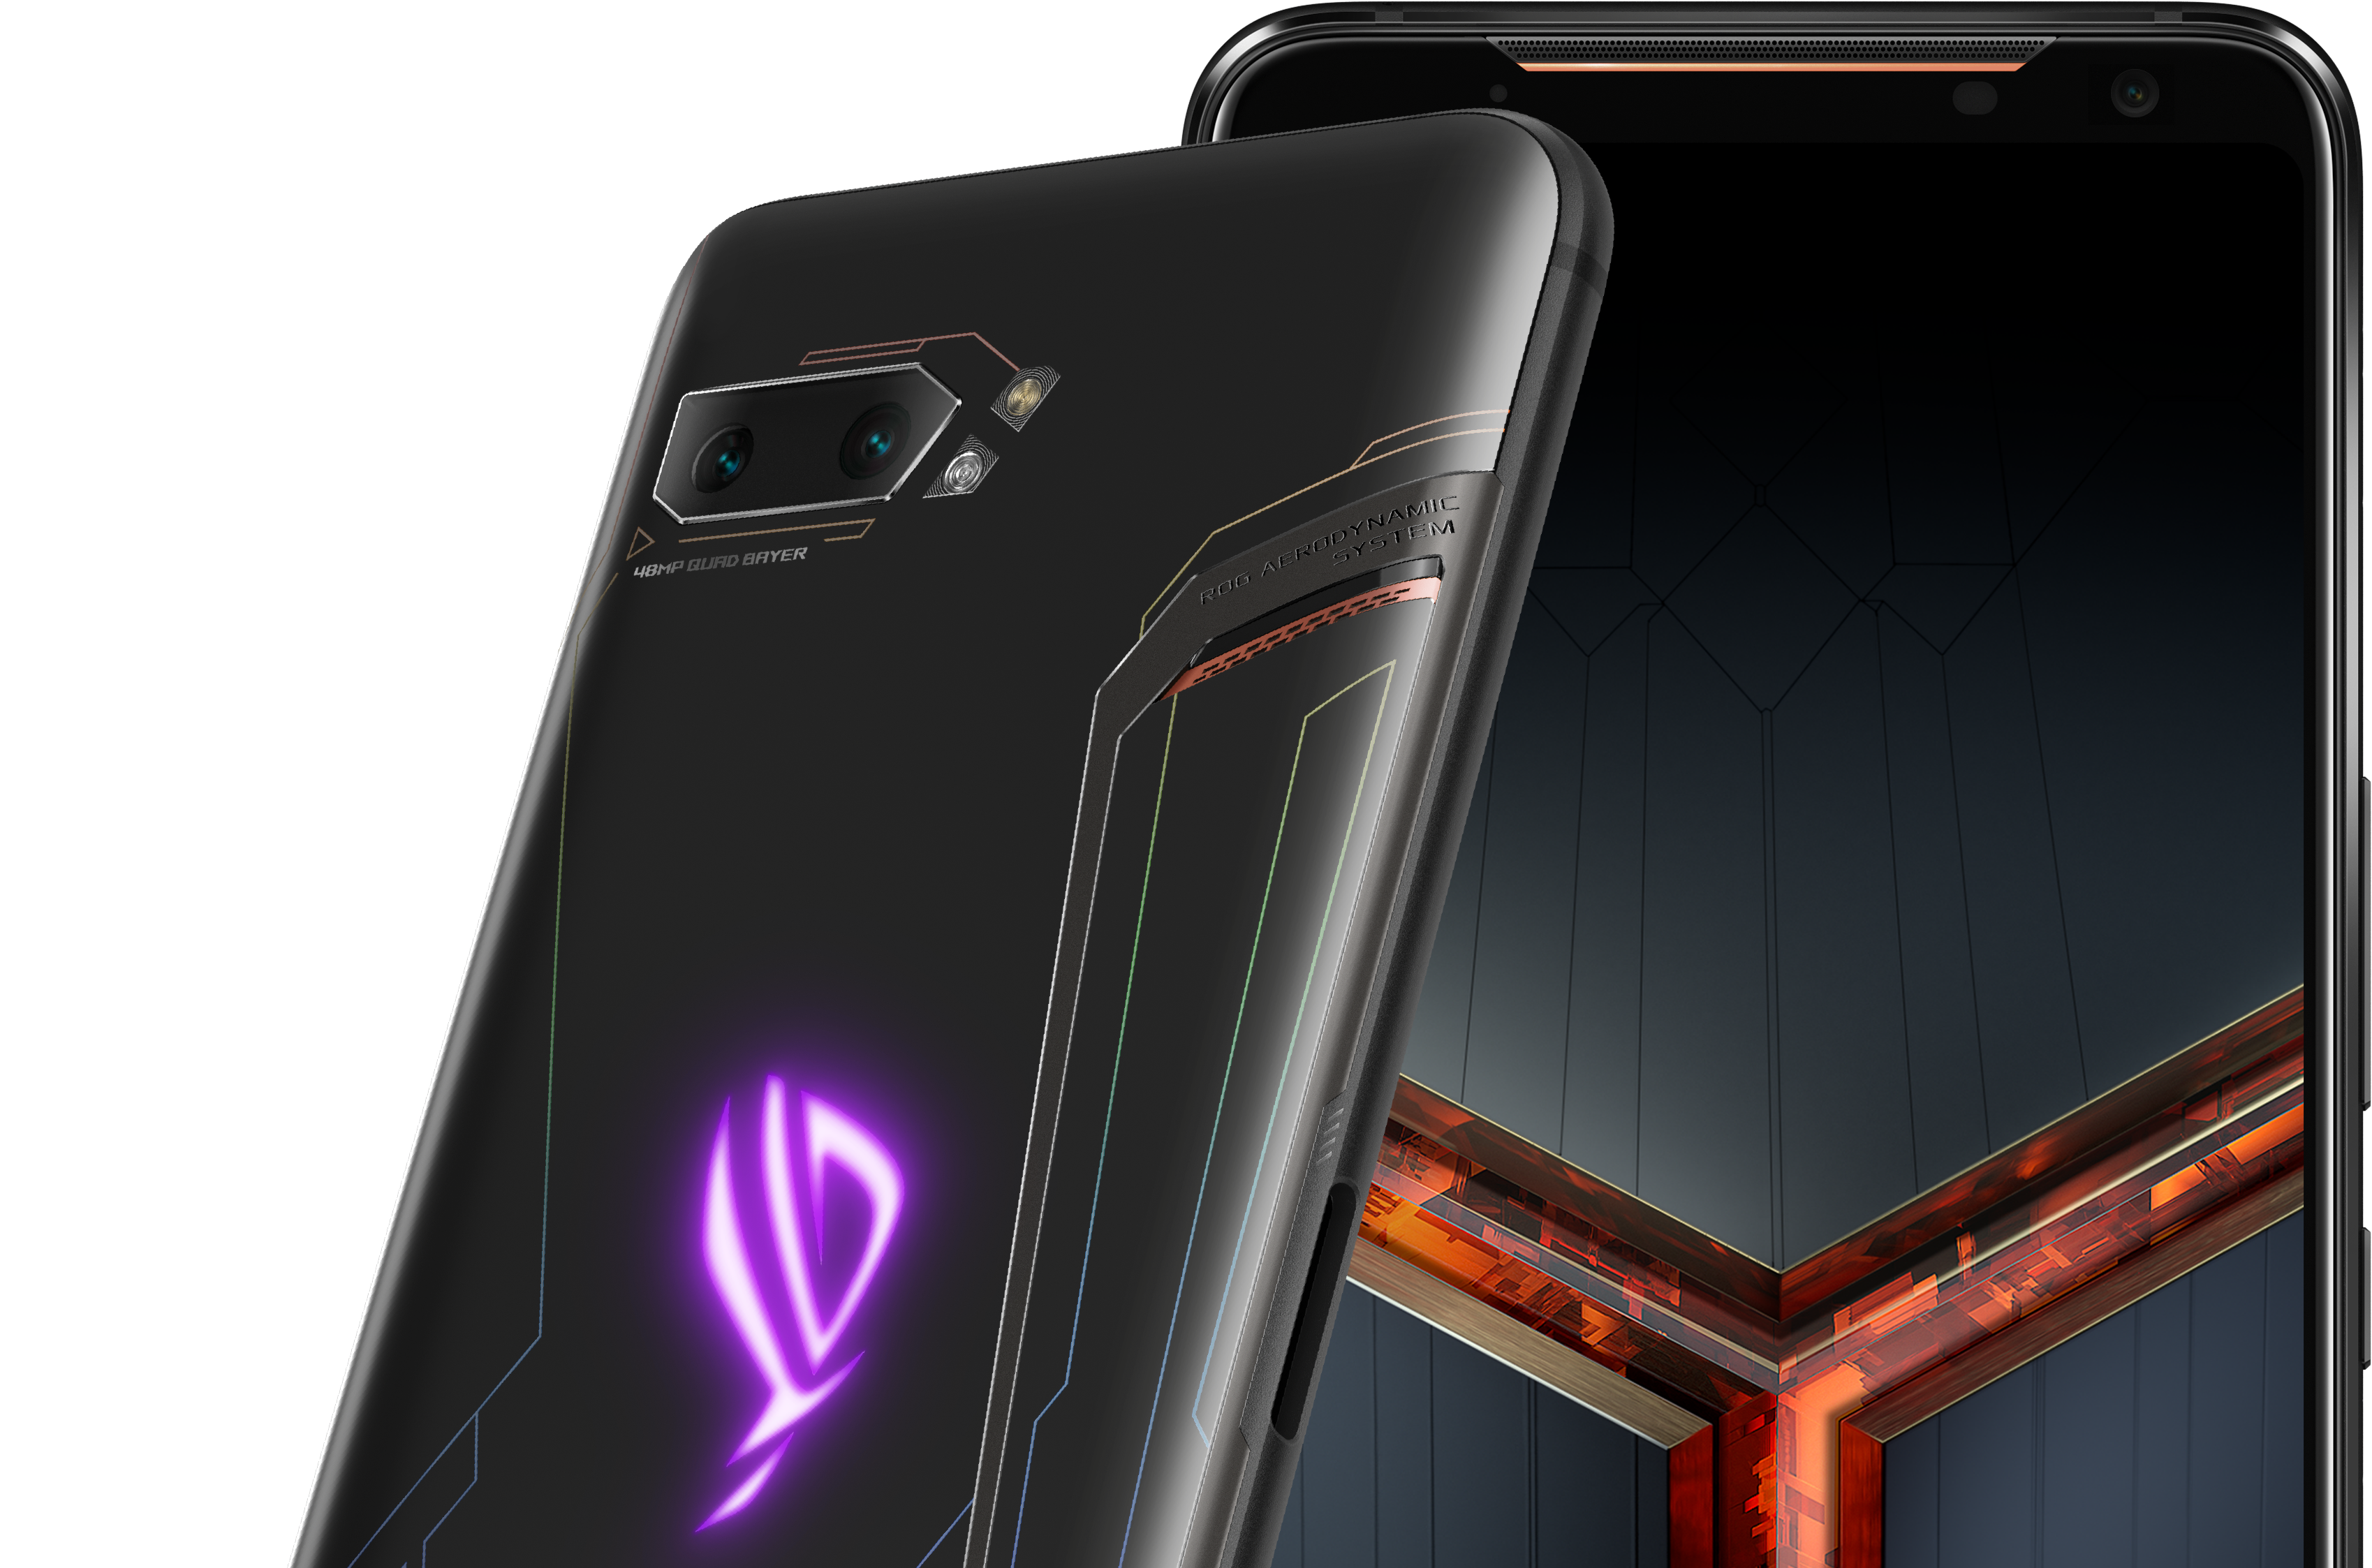 Asus Shares List Of 120fps Games For The Rog Phone Ii Update New Games